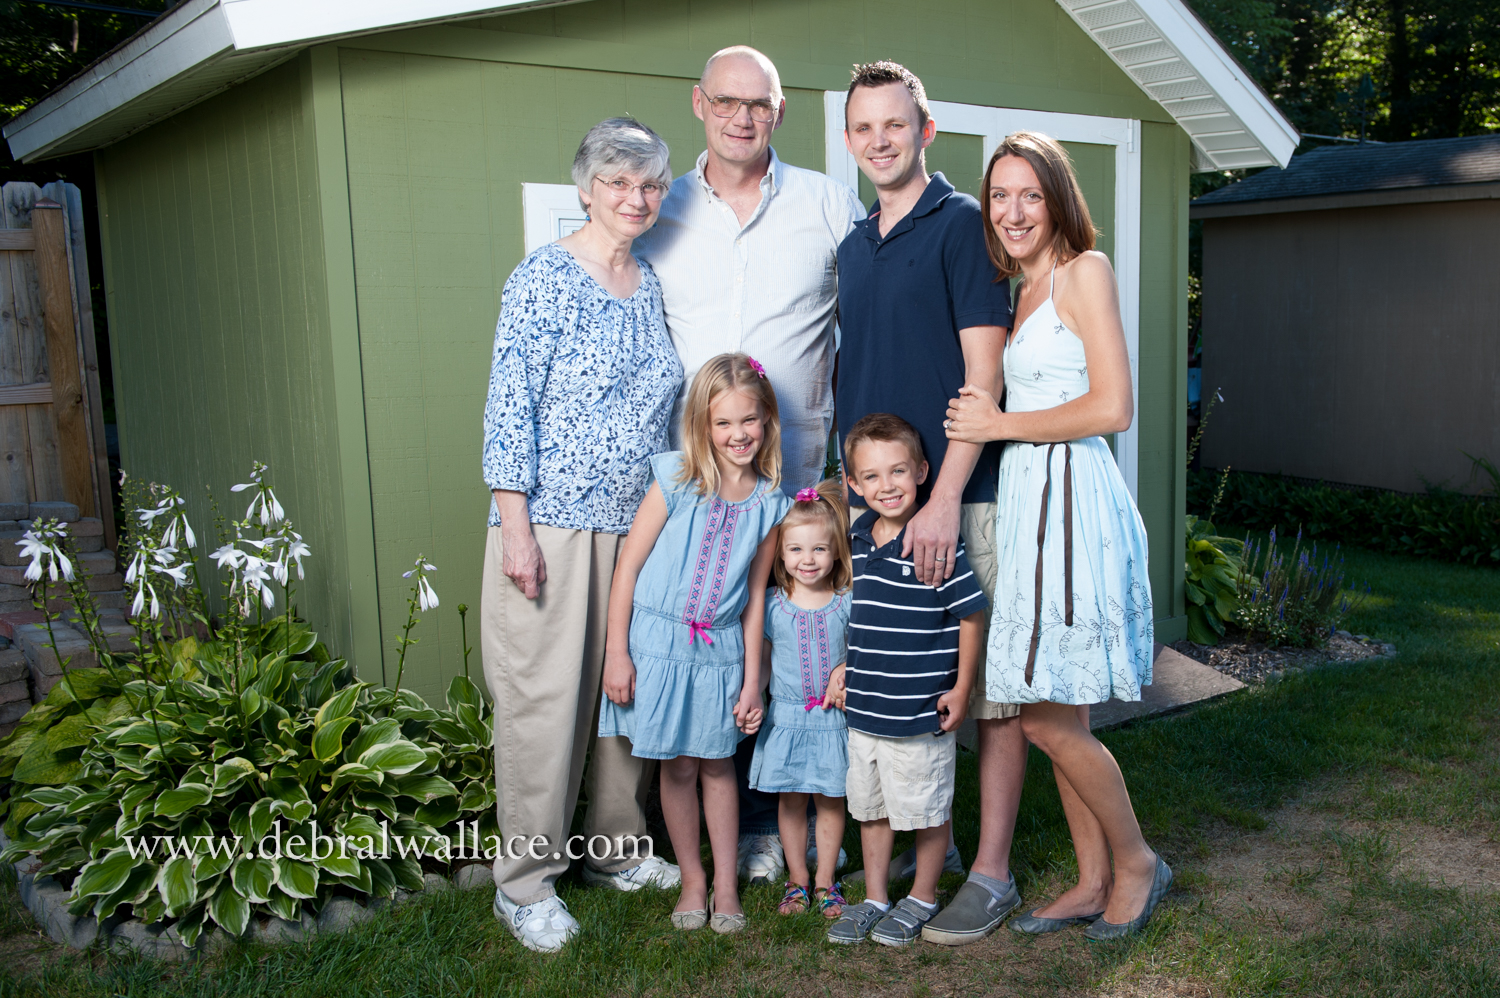 Greece NY family portrait photography-8185